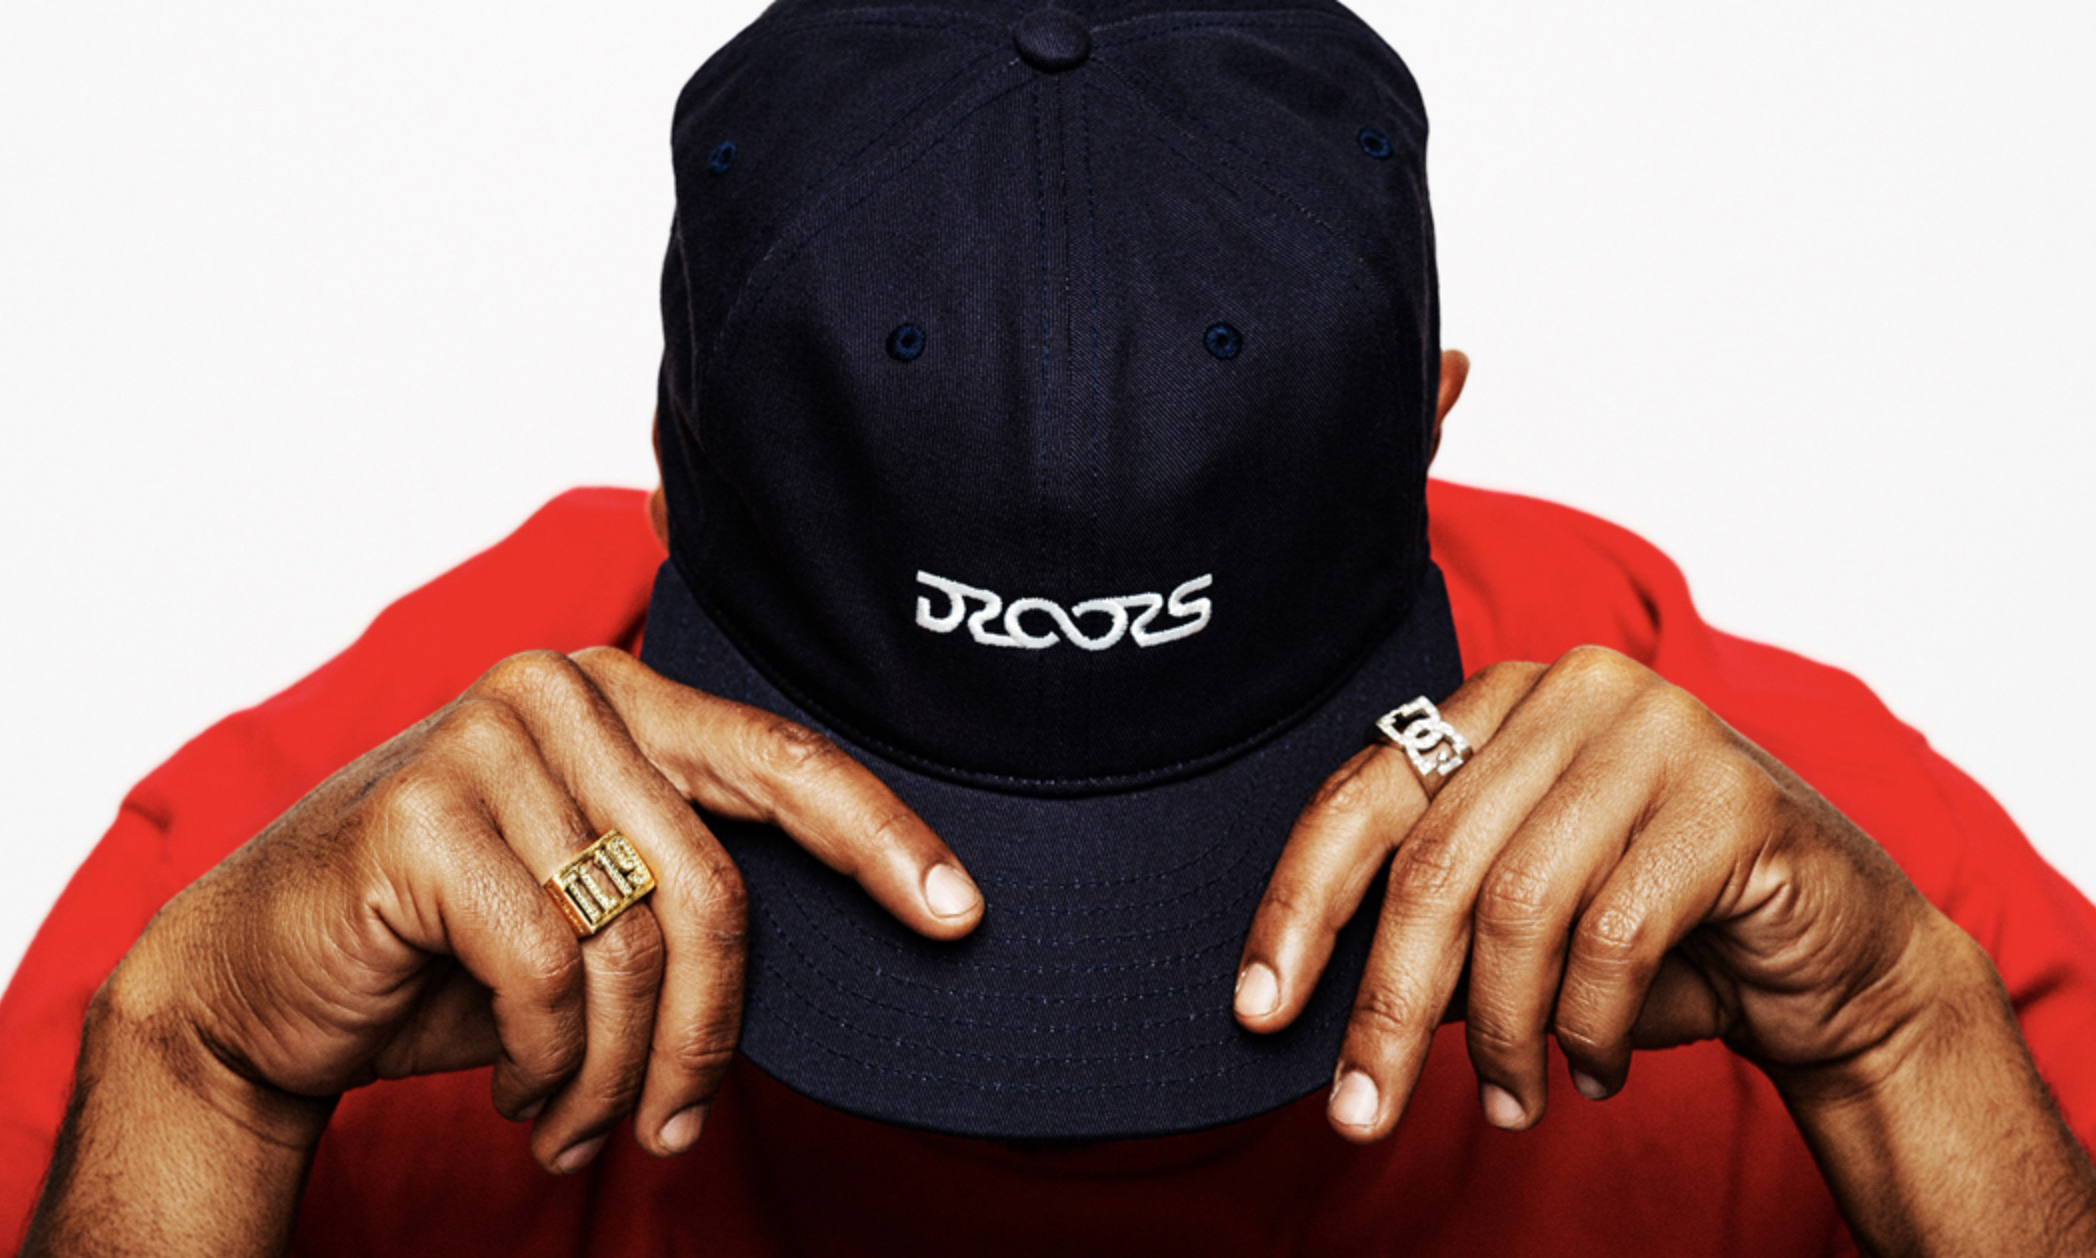 DC Shoes 前身 Droors Clothing 重新启动,推出全新系列